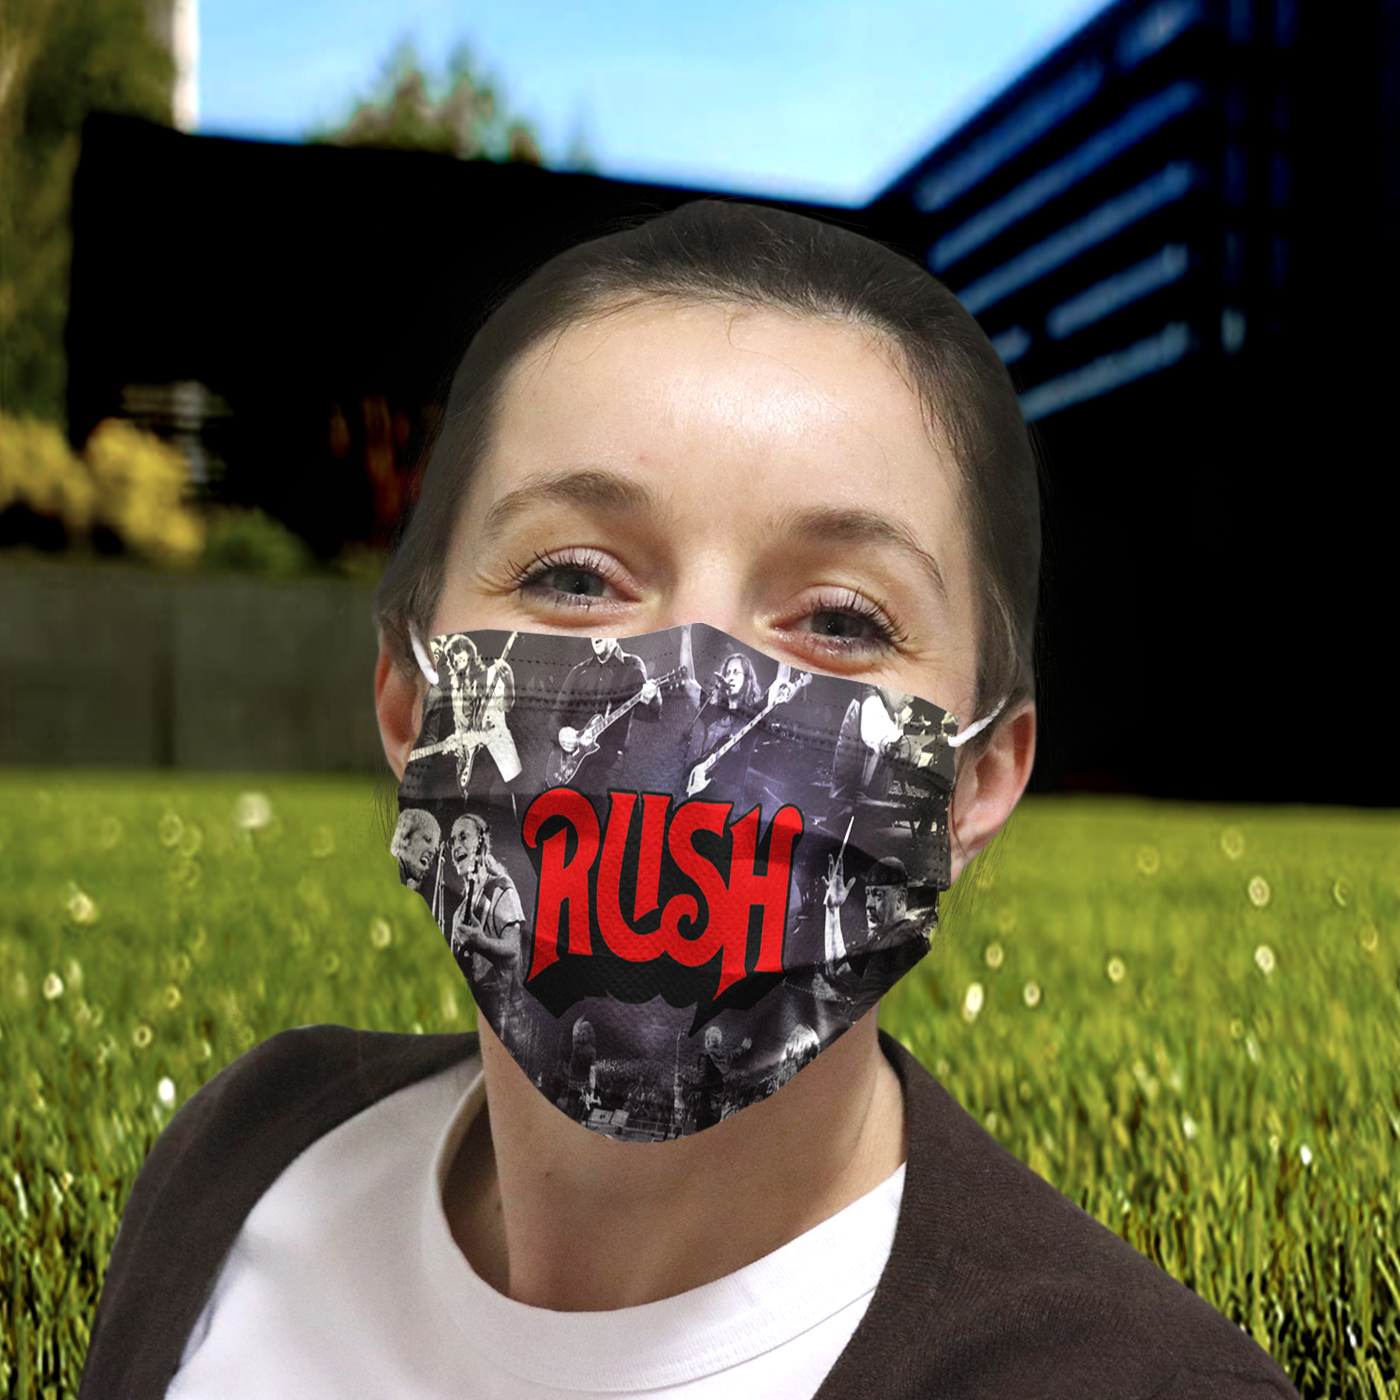 Rush rock band anti-dust cotton face mask 3